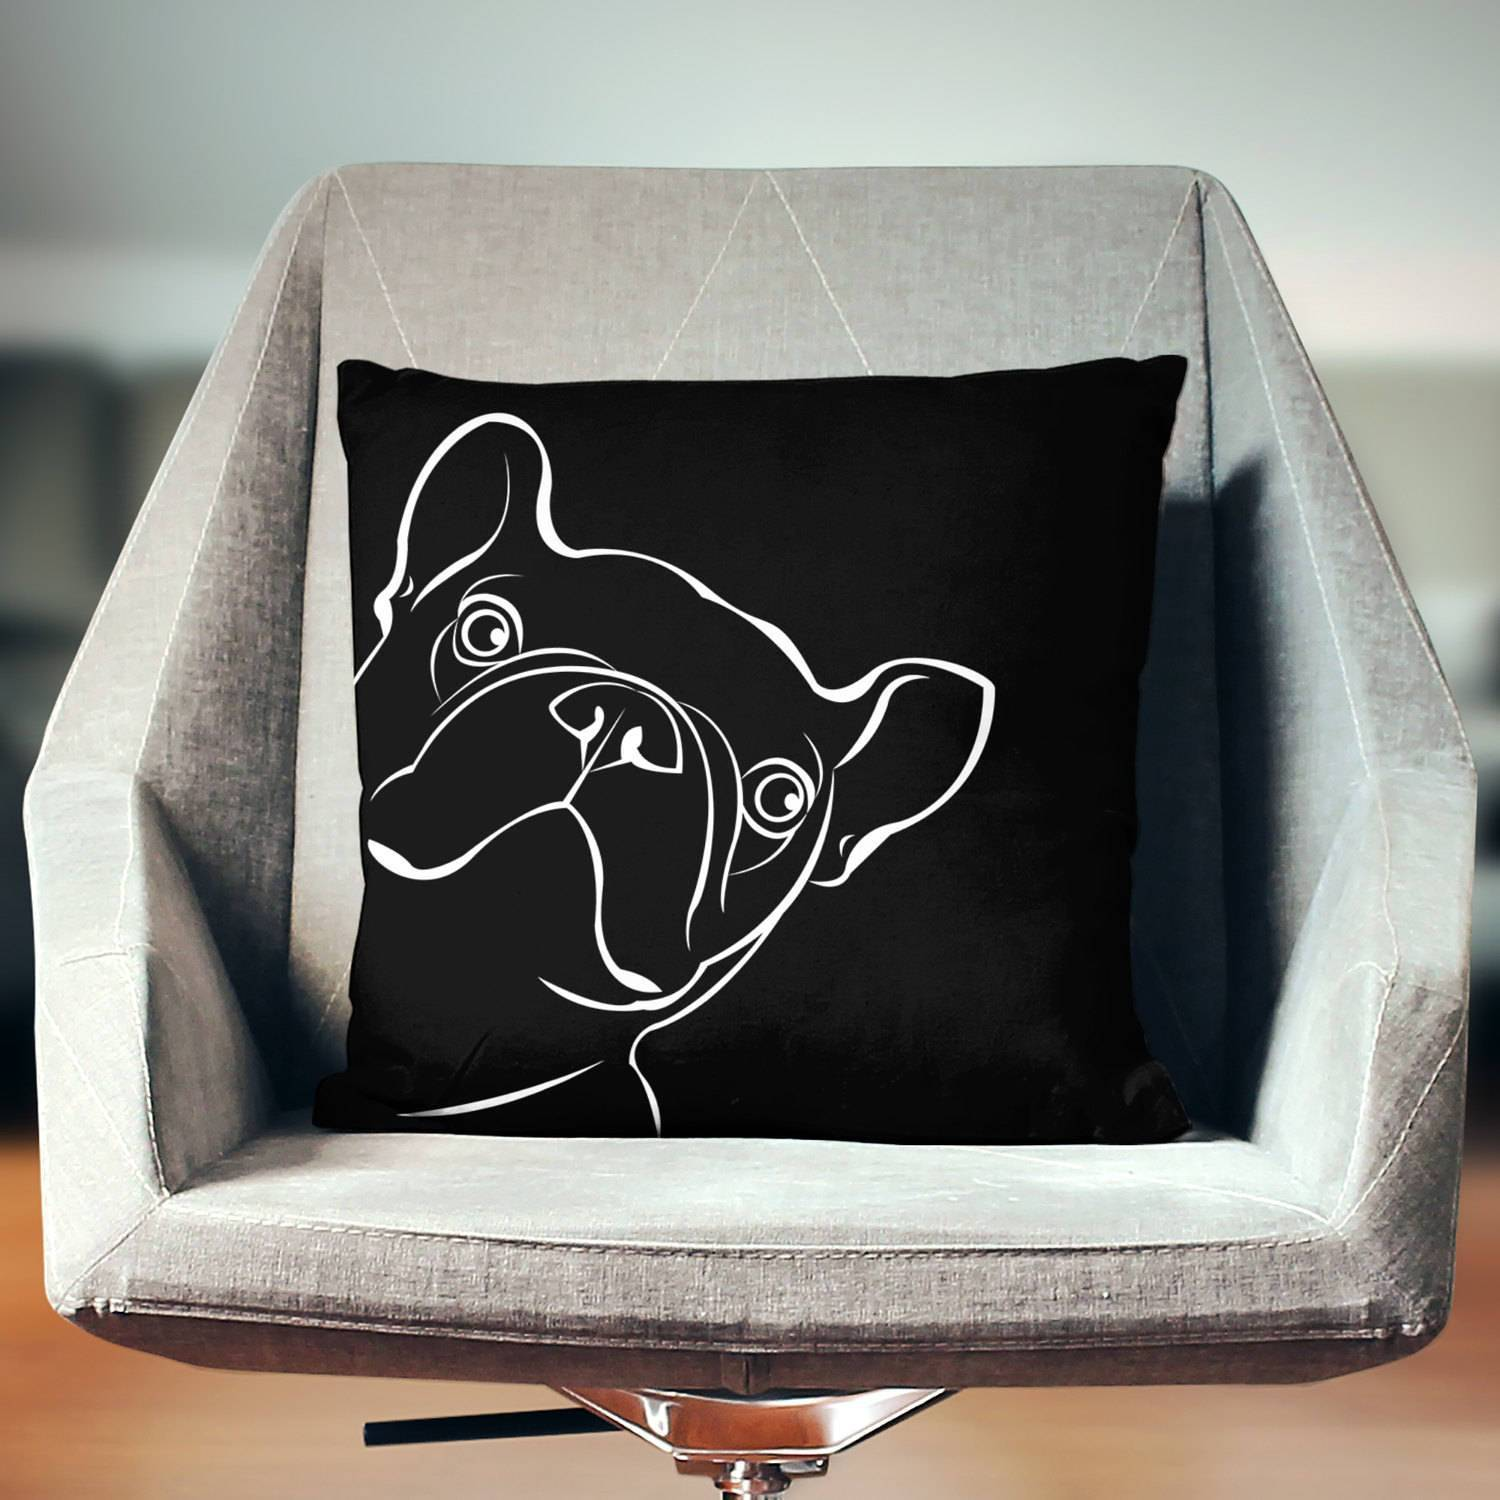 French Bulldog Throw Pillow - Pillow Covers - W.FRANCIS